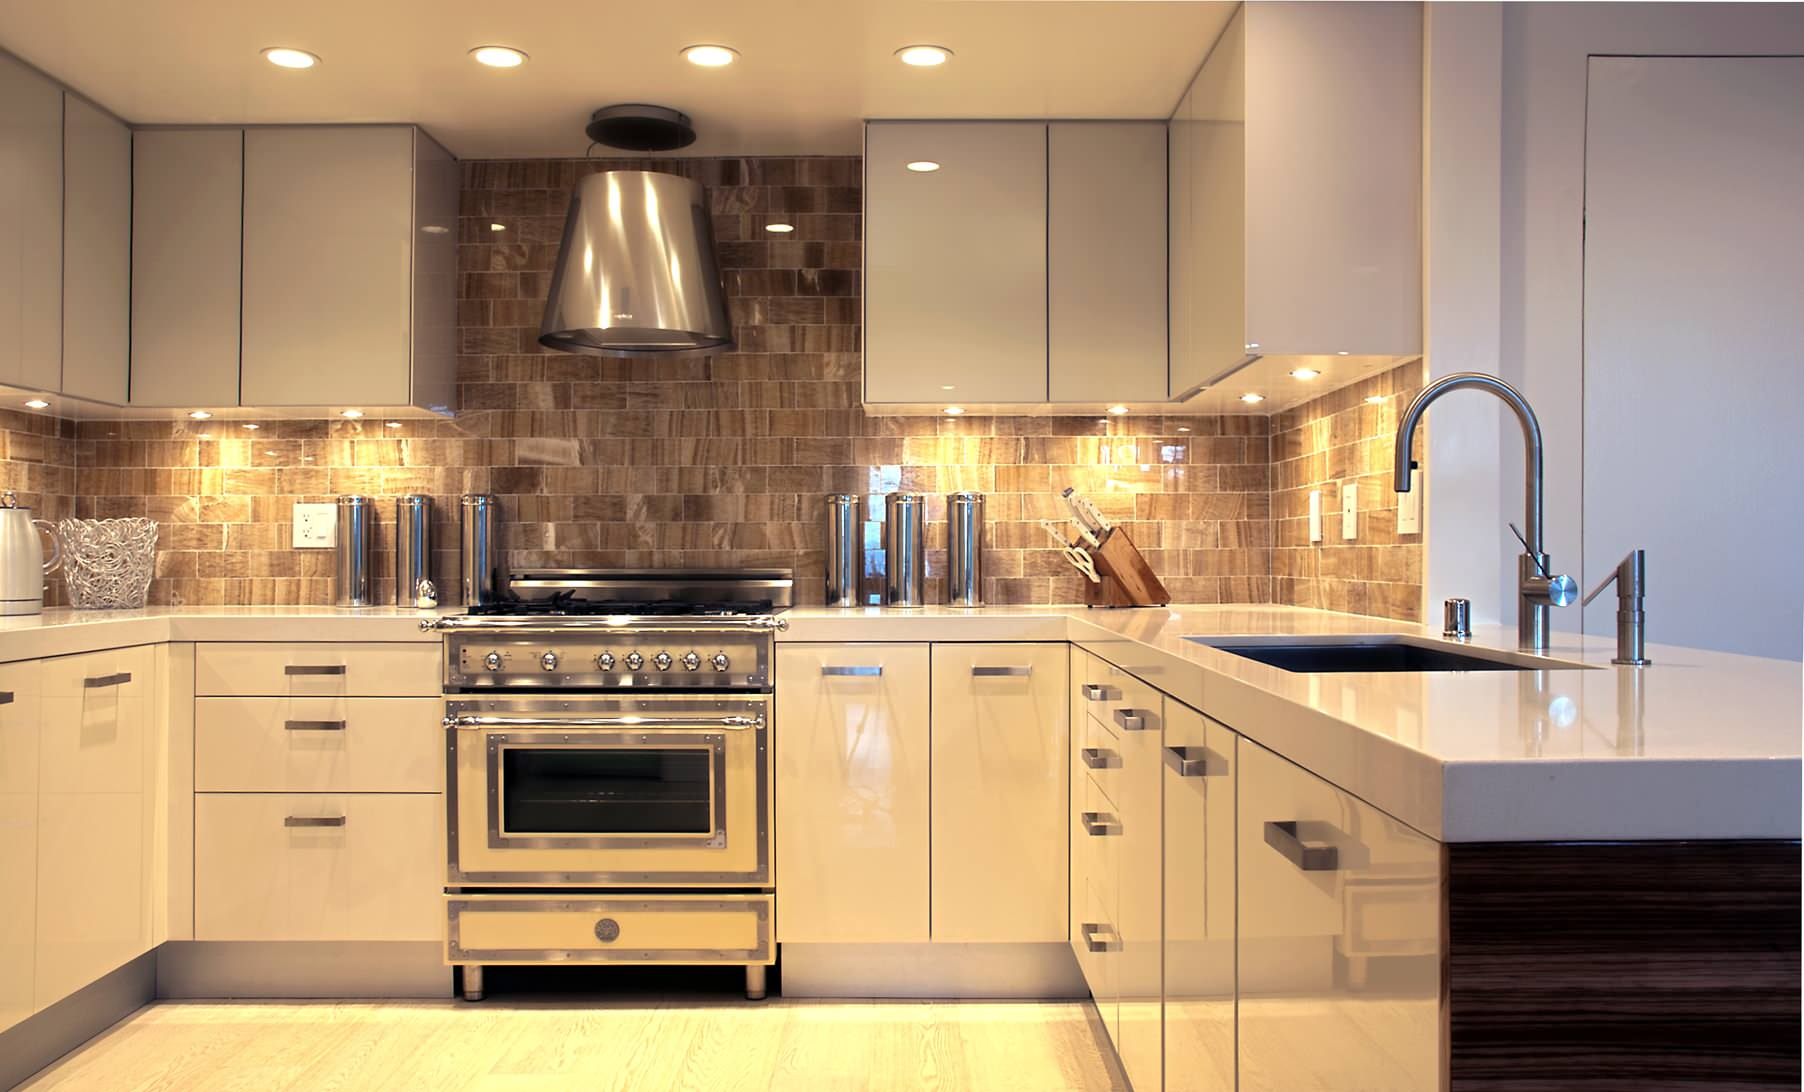 task-lighting 80+ Unusual Kitchen Design Ideas for Small Spaces in 2021